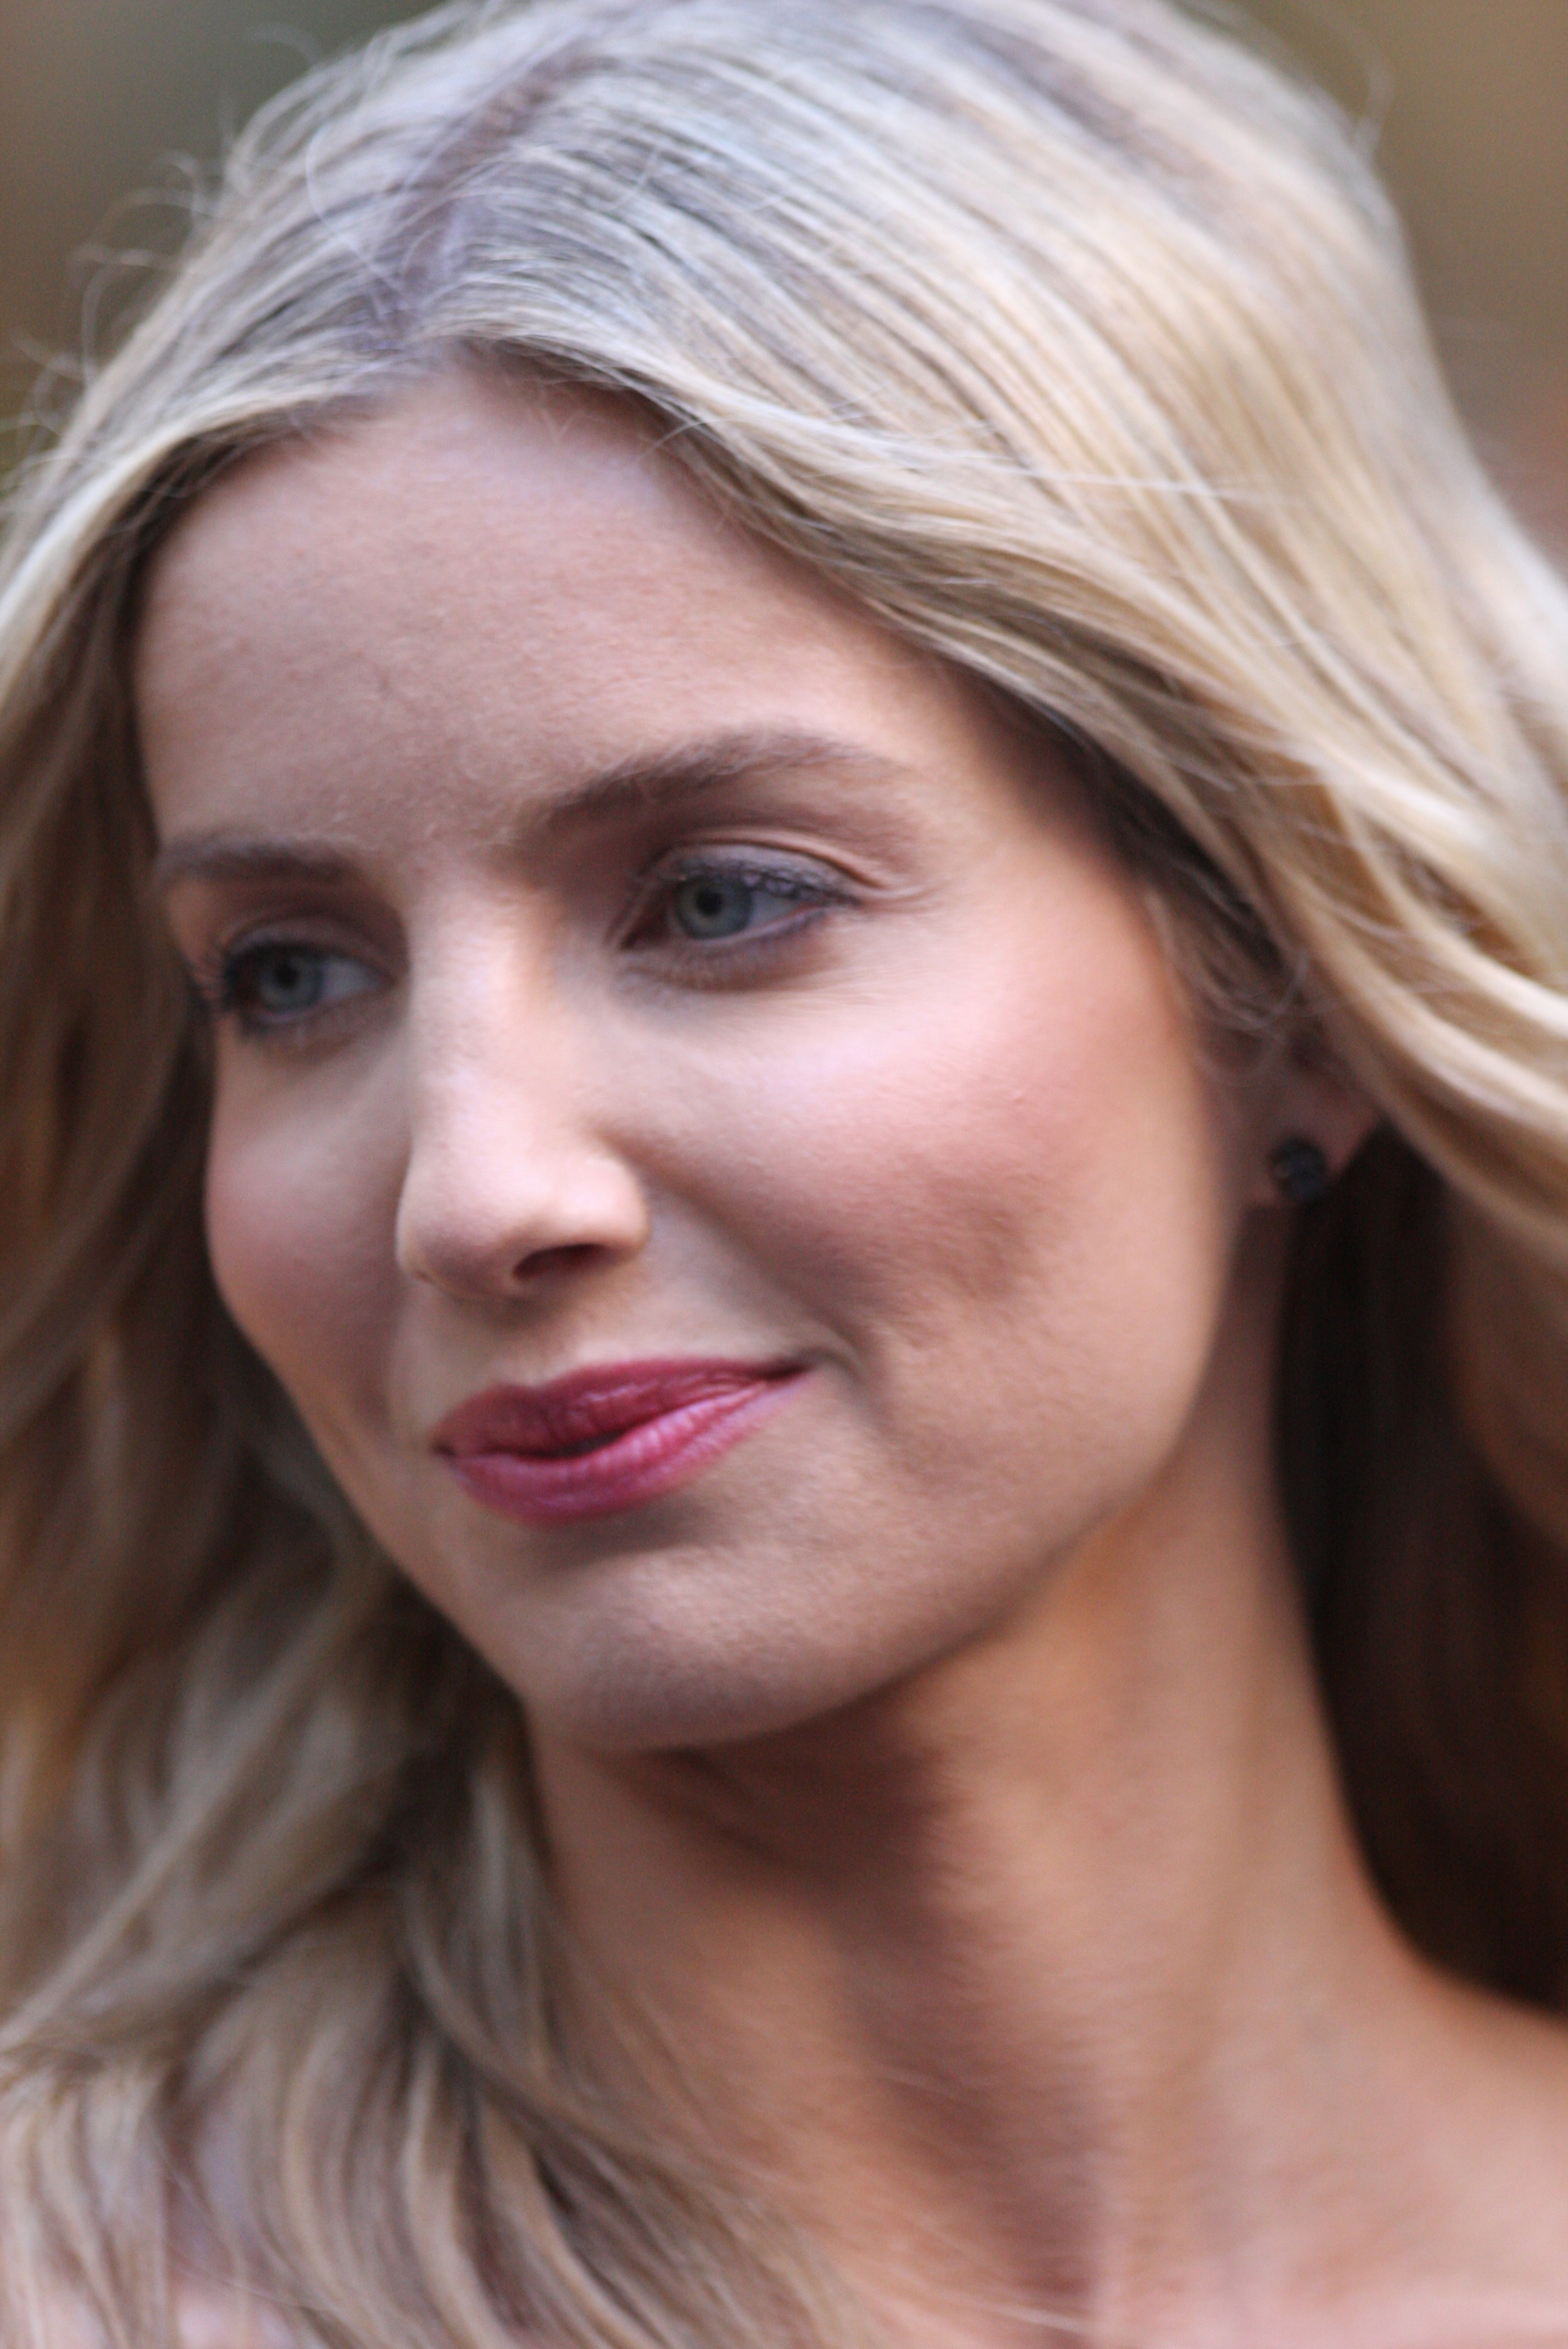 The 33-year old daughter of father (?) and mother(?) Annabelle Wallis in 2018 photo. Annabelle Wallis earned a  million dollar salary - leaving the net worth at 2 million in 2018